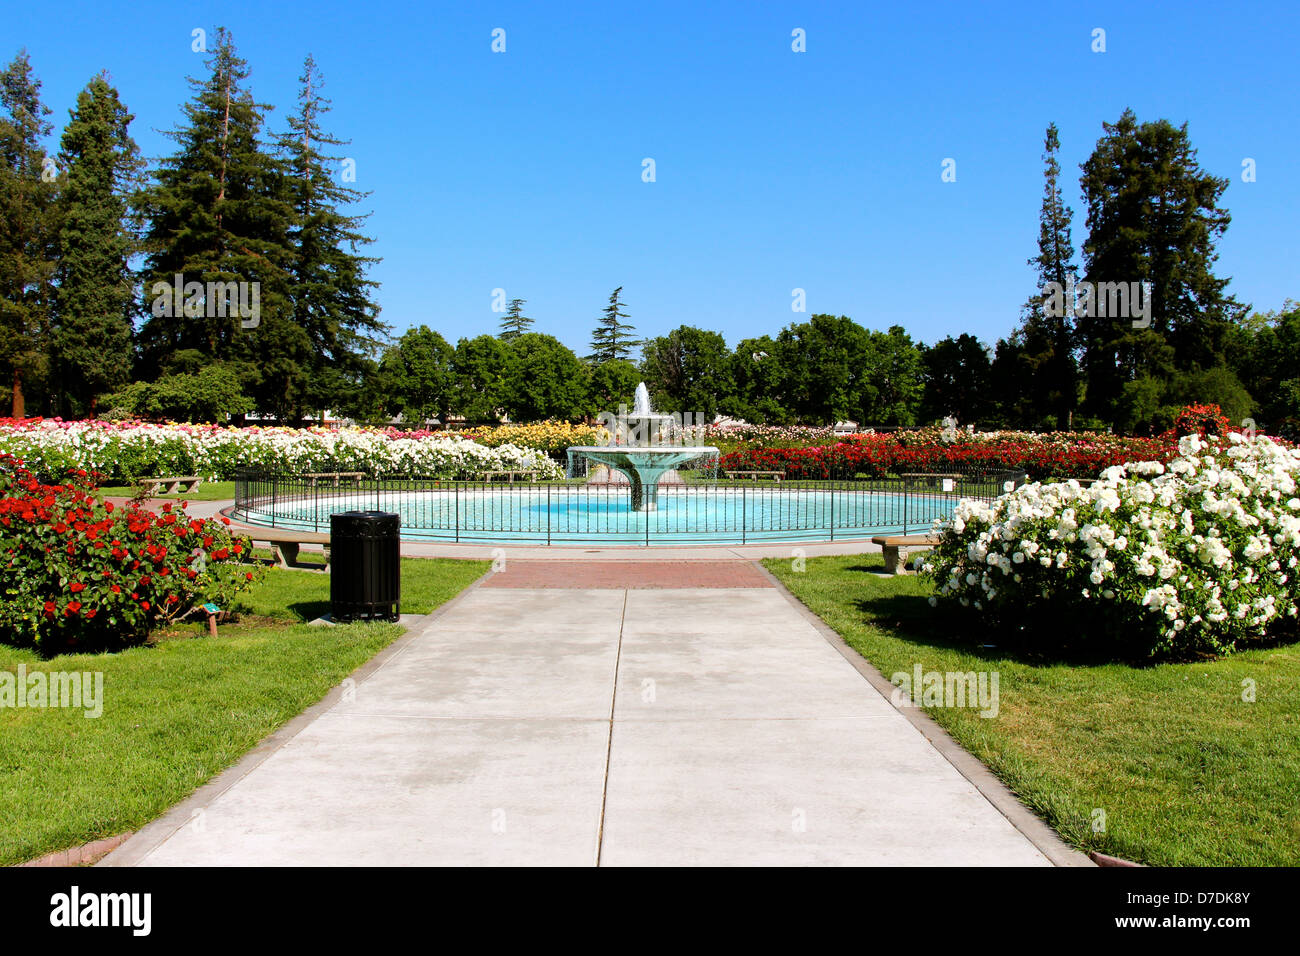 San Jose Municipal Rose Garden In San Jose California Stock Photo Royalty Free Image 56234219